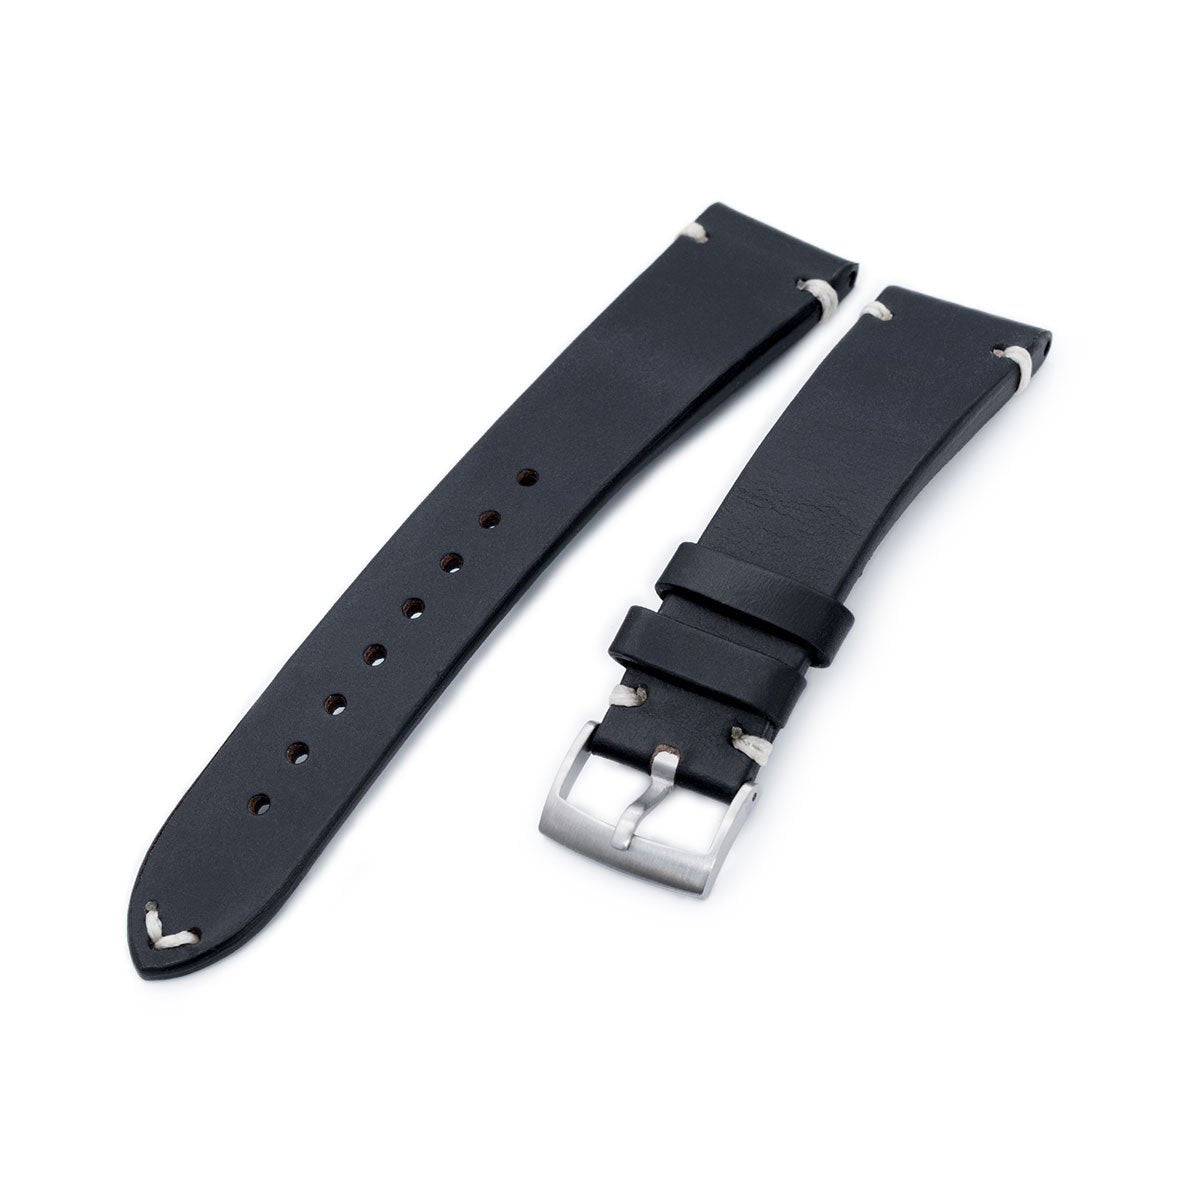 20mm 21mm 22mm MiLTAT Horween Chromexcel Watch Strap Color Black Beige Stitching Strapcode Watch Bands